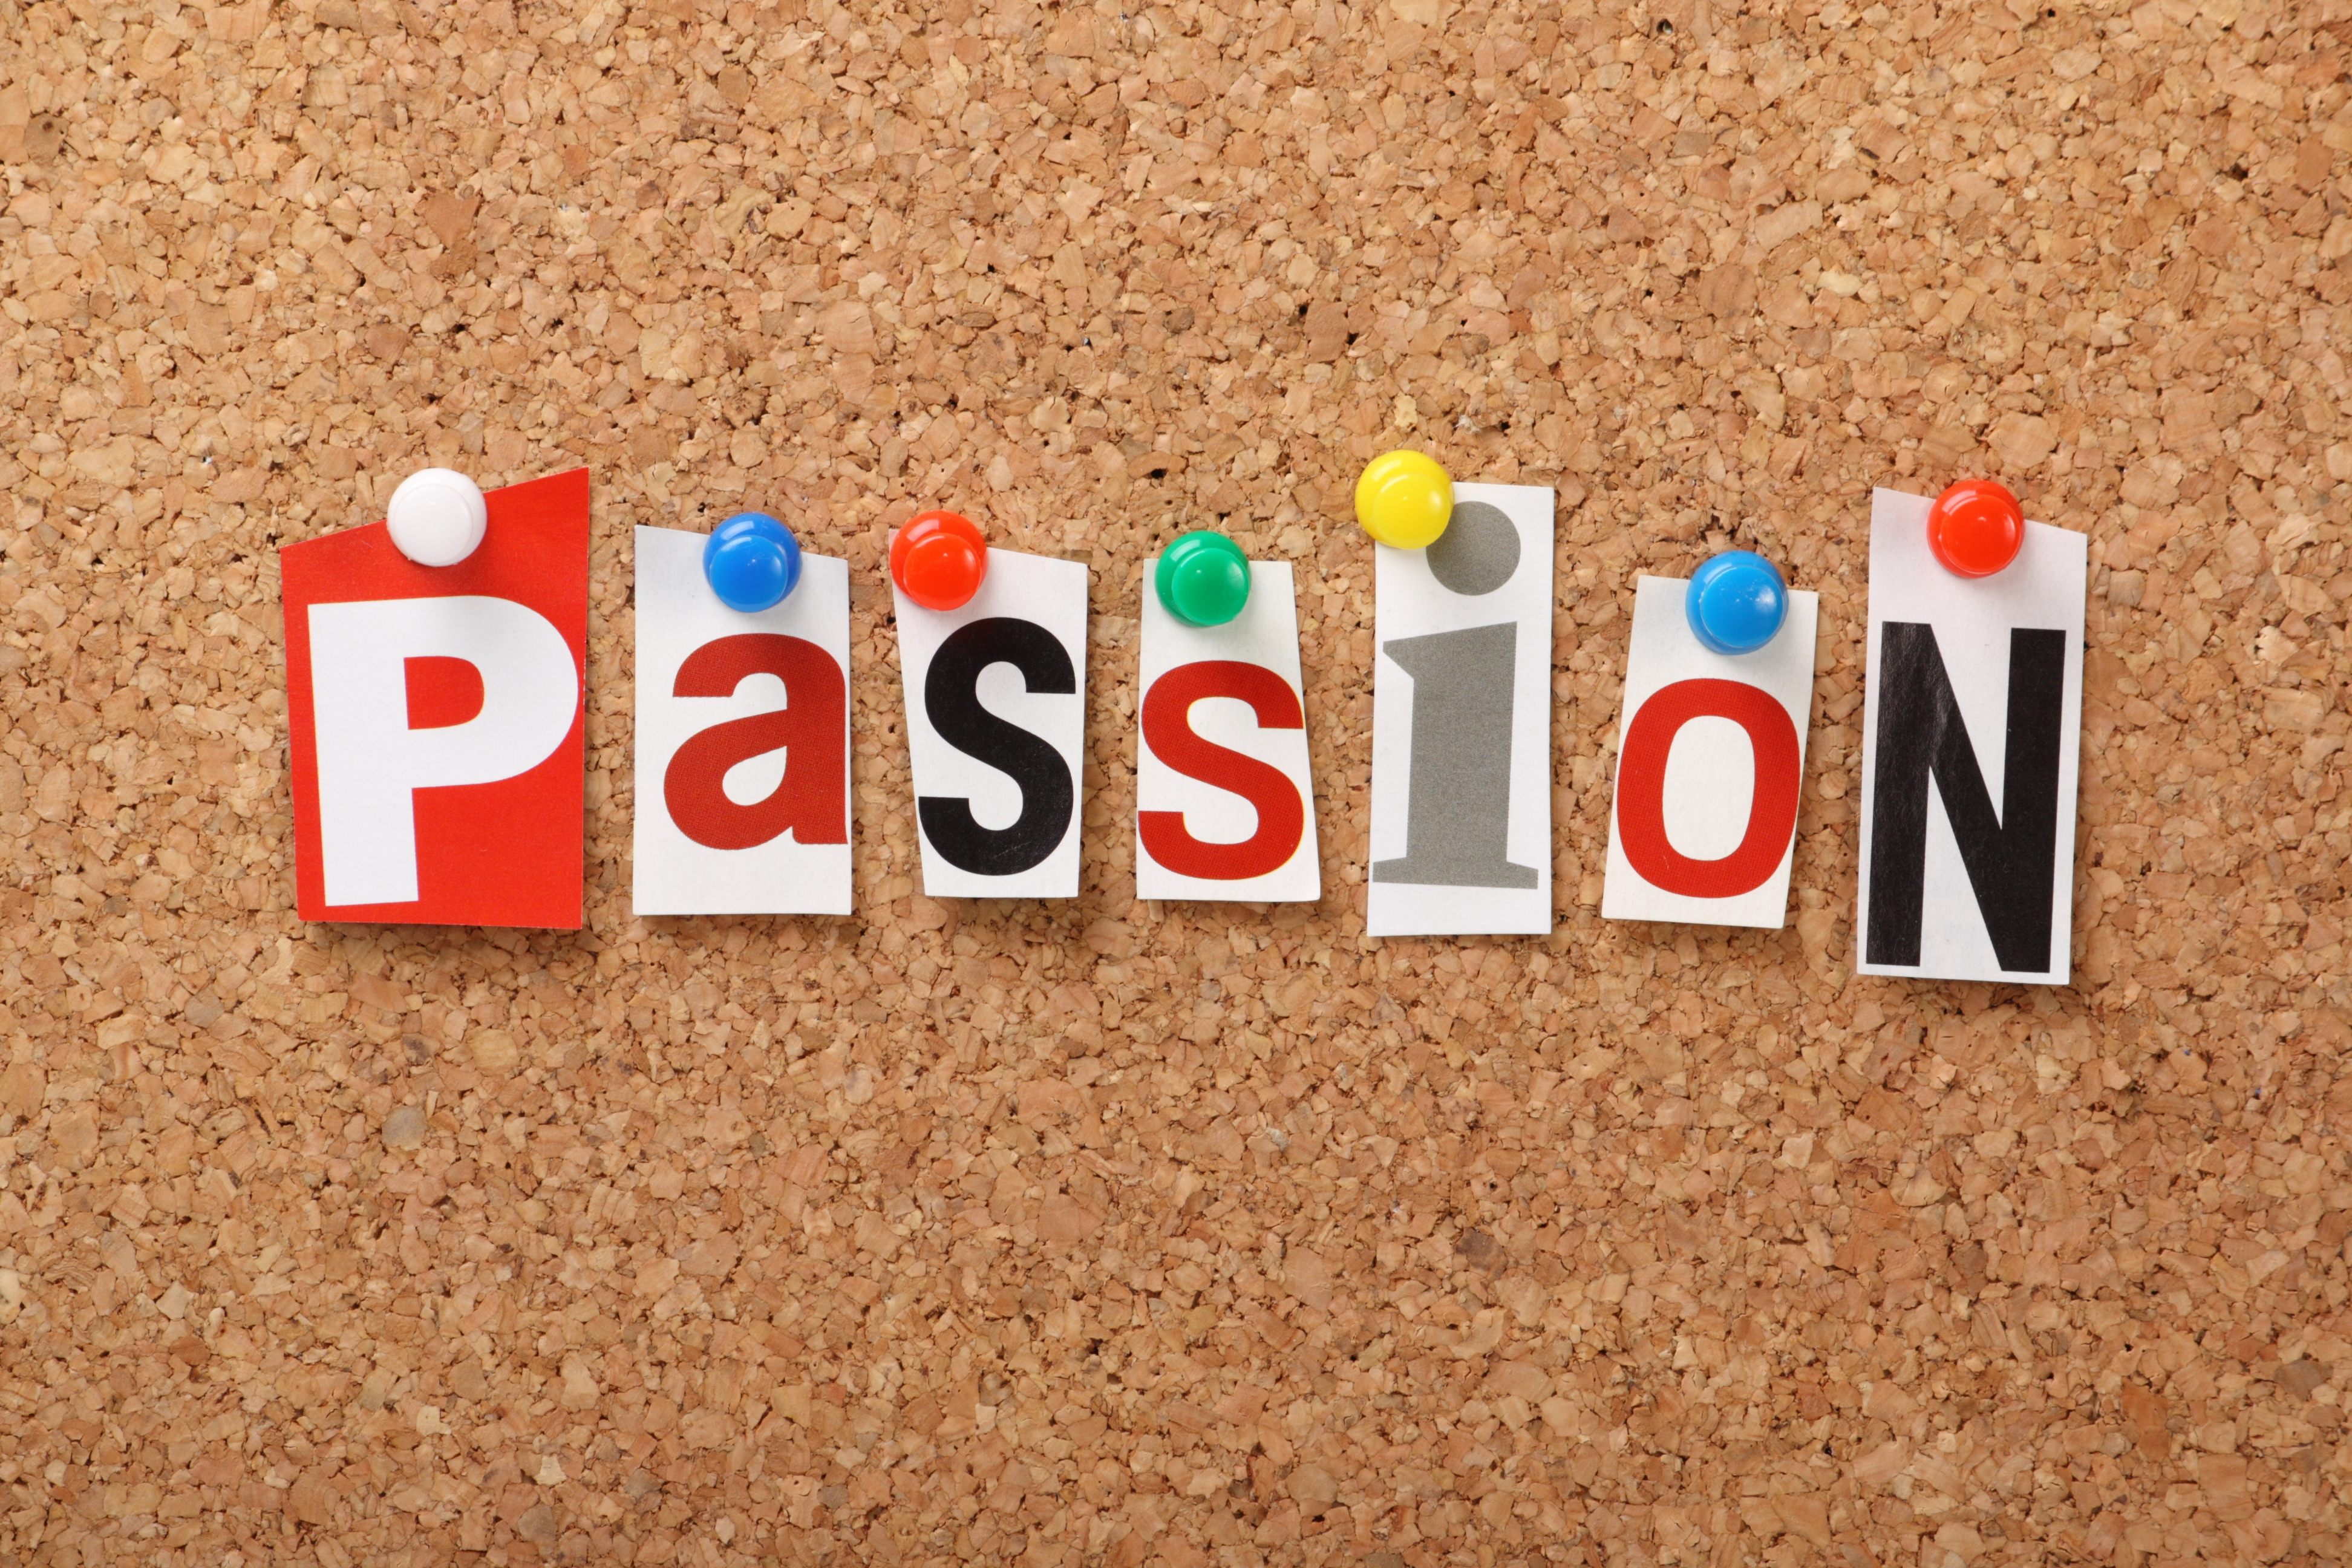 What the passion my journey to me the discovery